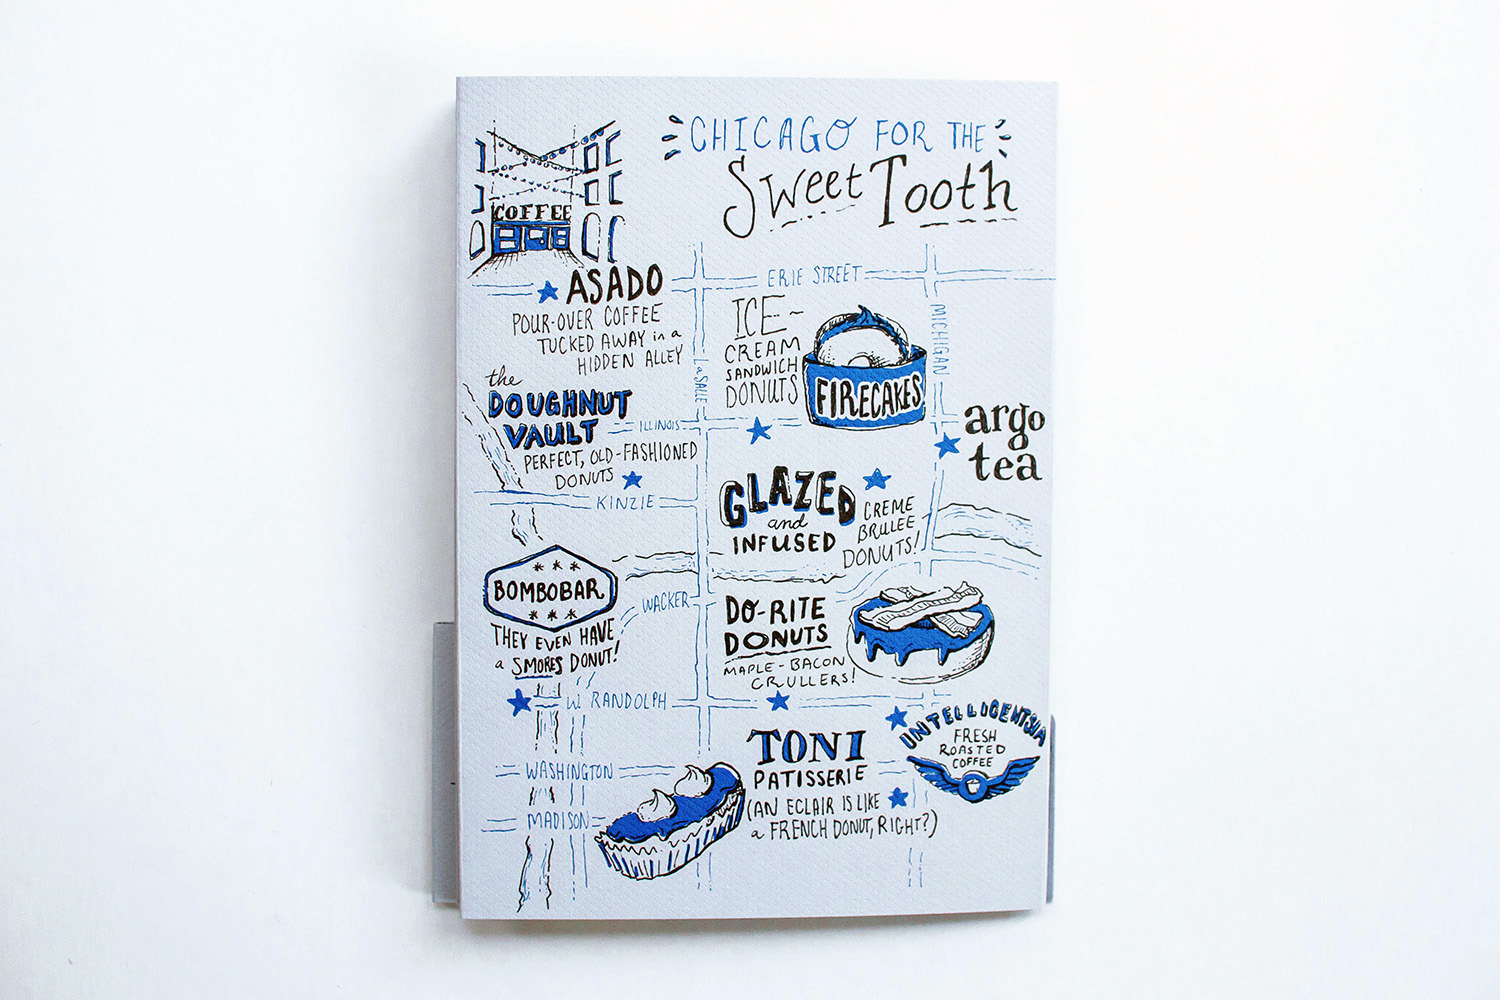 Hand drawn illustrated map and city guide to Chicago for sweet tooths, donuts and coffee. Features Asado, Firecakes, Argo Tea, Doughnut Vault, Bombobar, Glazed and infused, Do-Rite Donuts, Toni Patisserie and Intelligentsia coffee roasters.